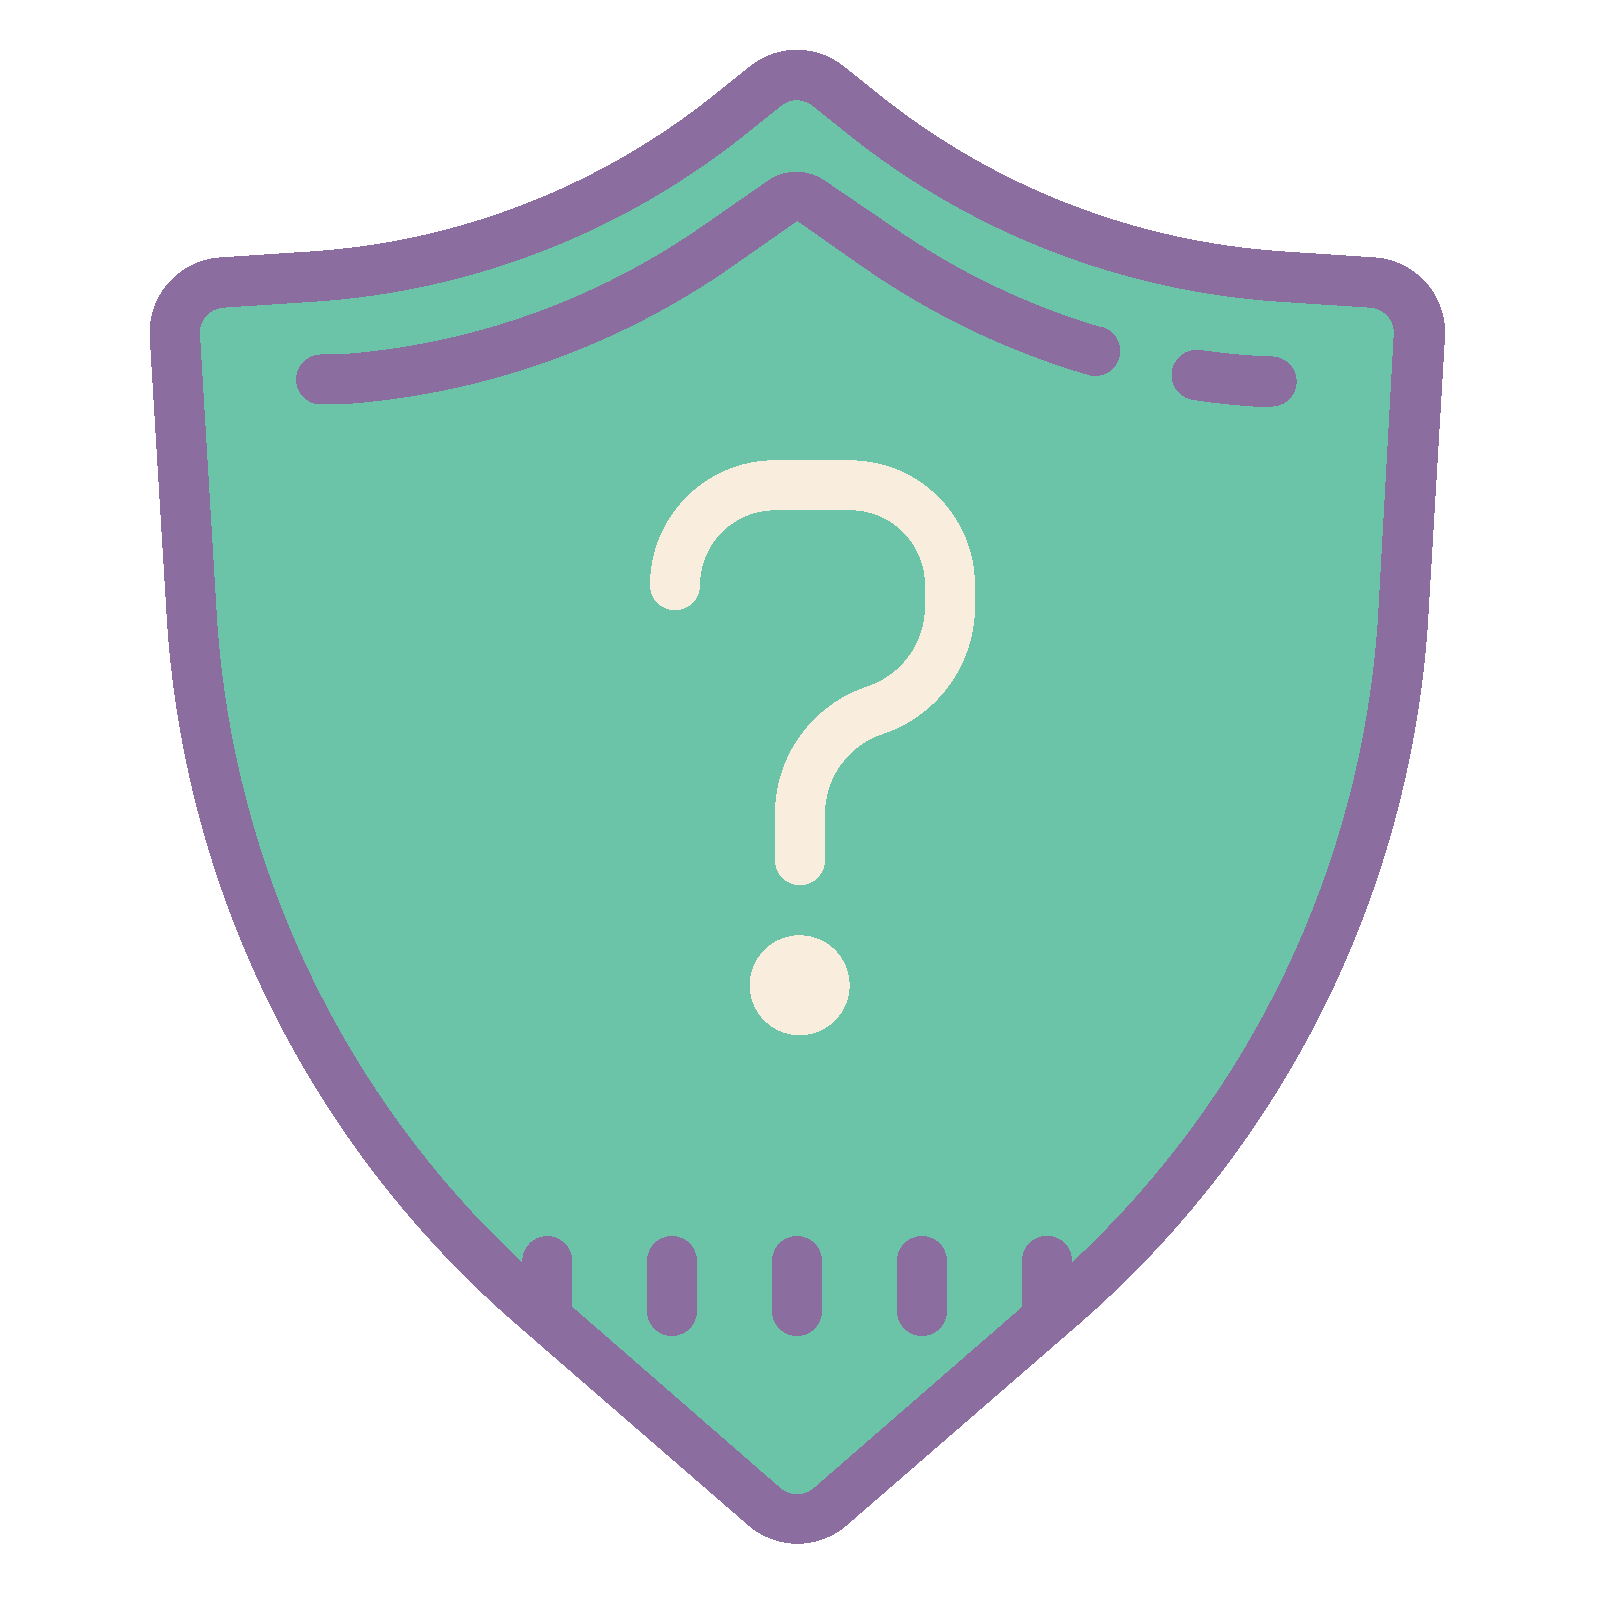 question-shield